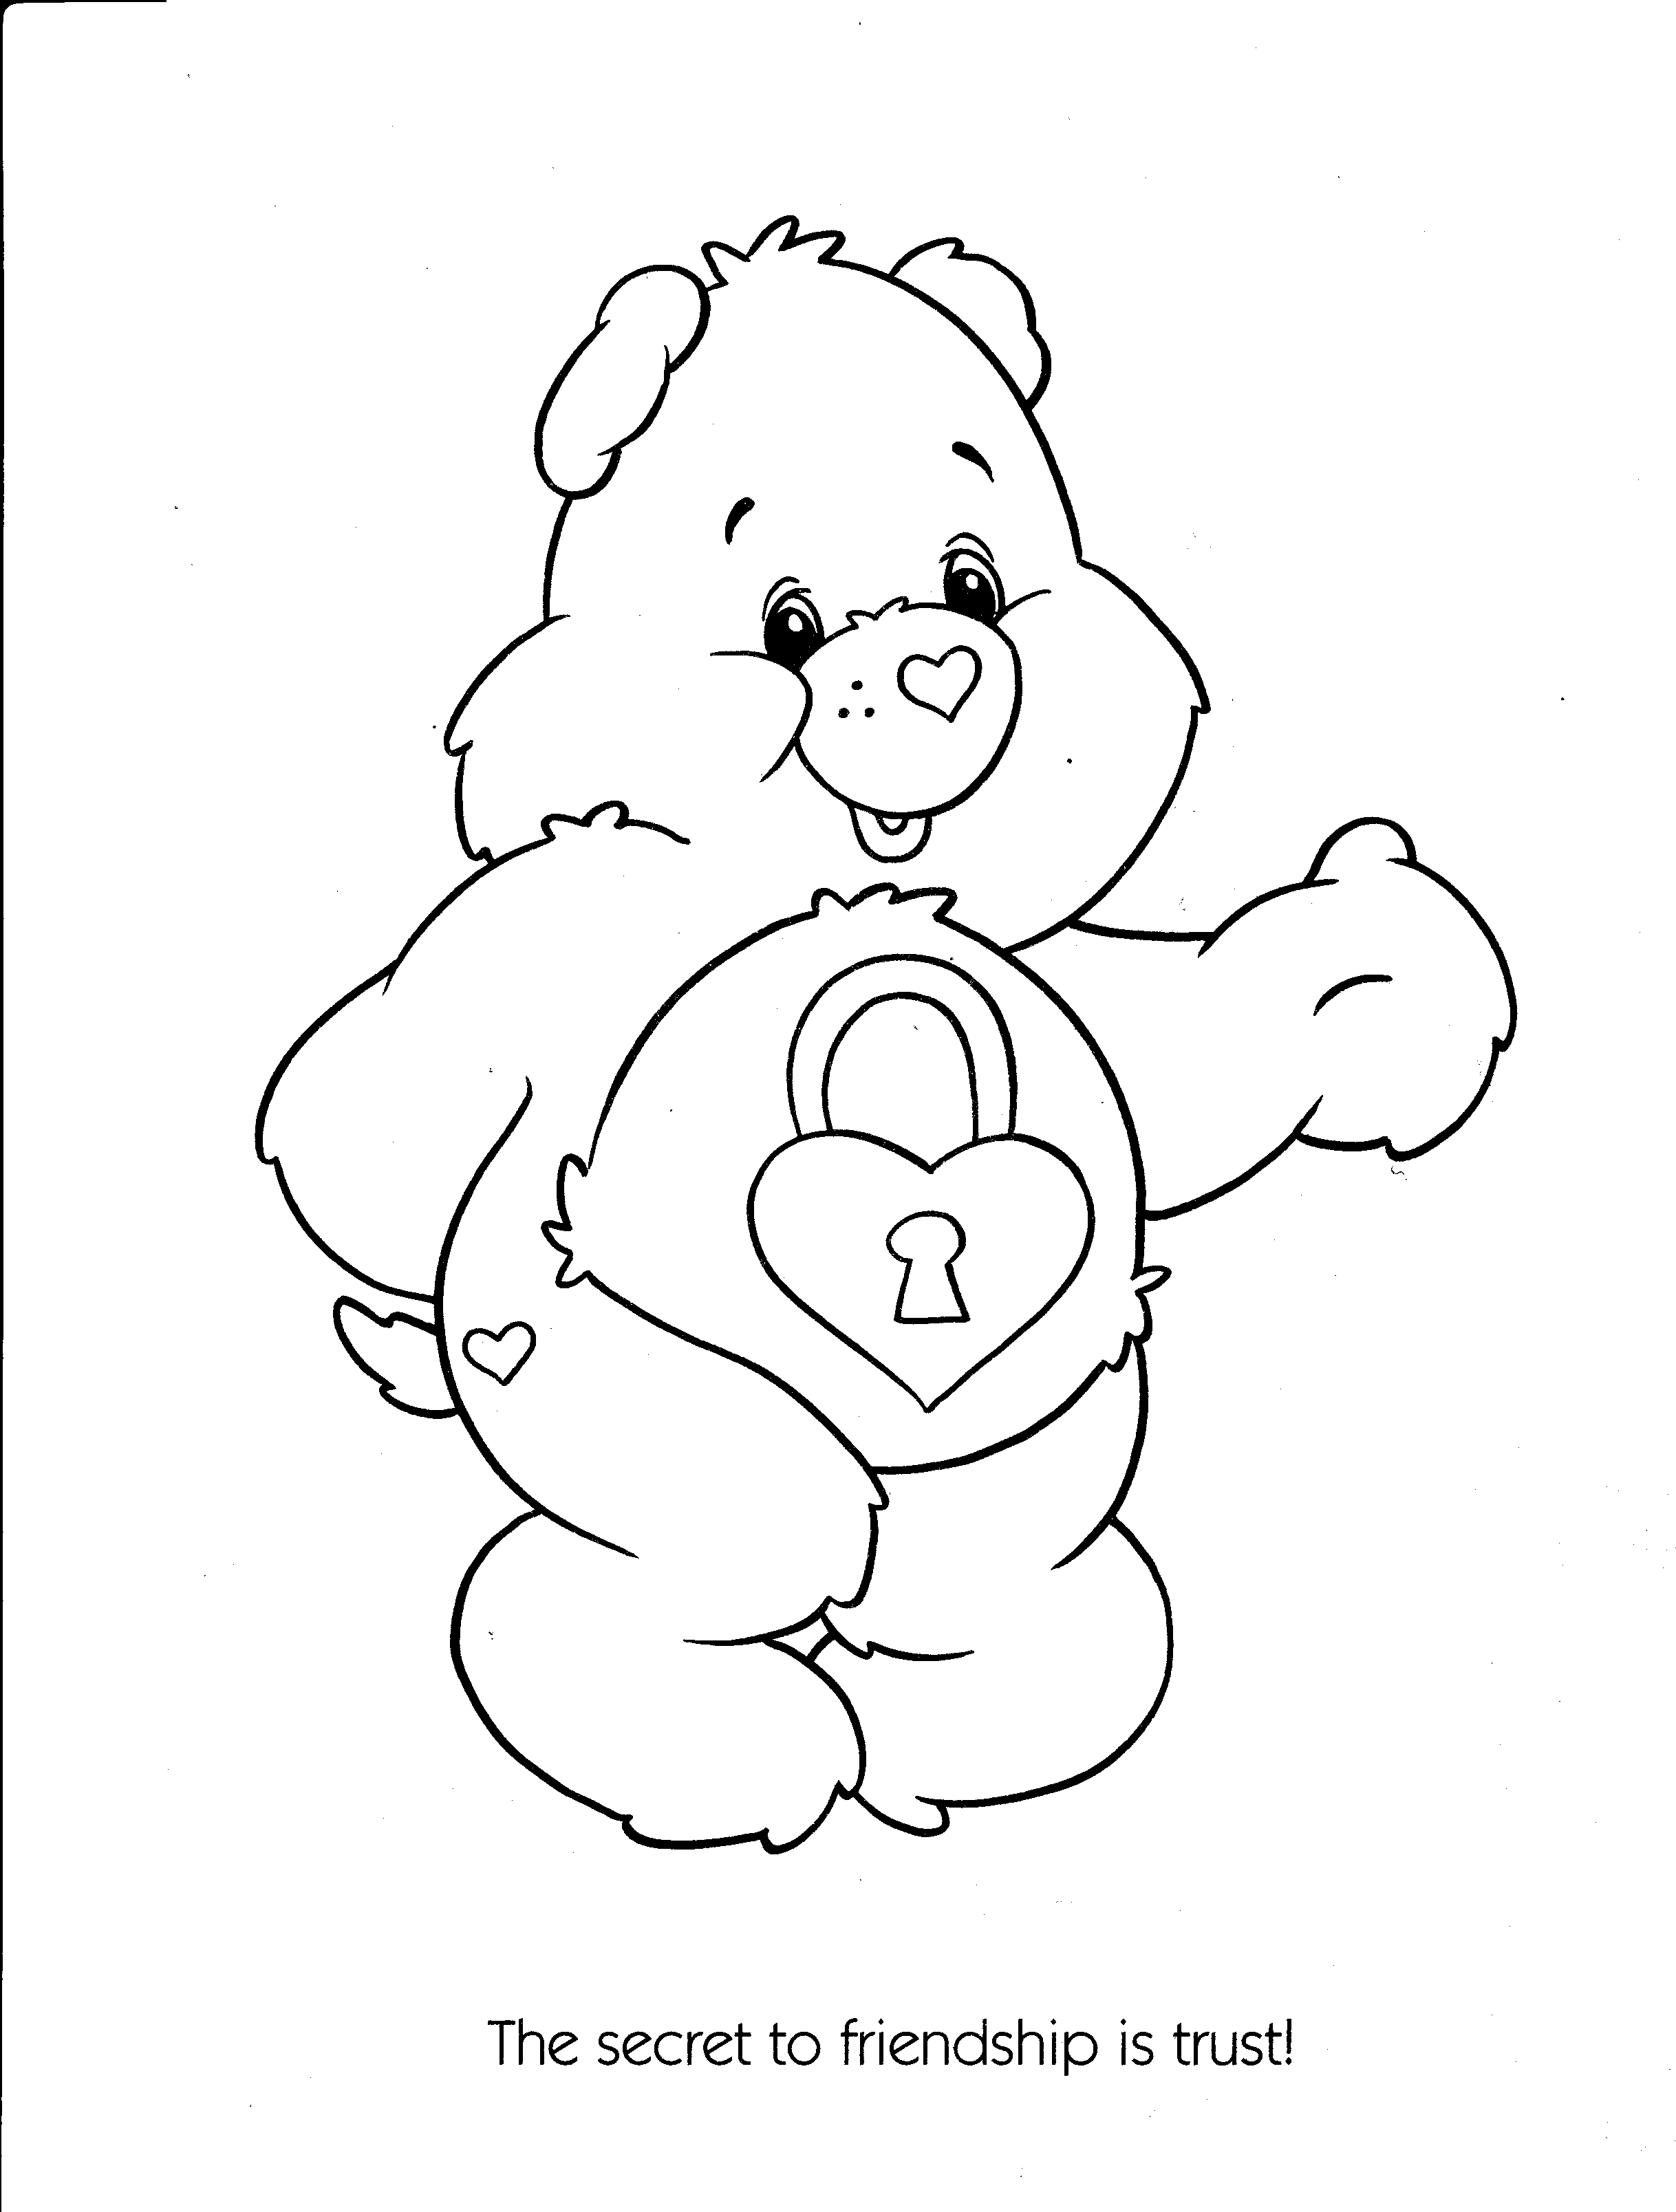 evil cear bears coloring pages - photo#12